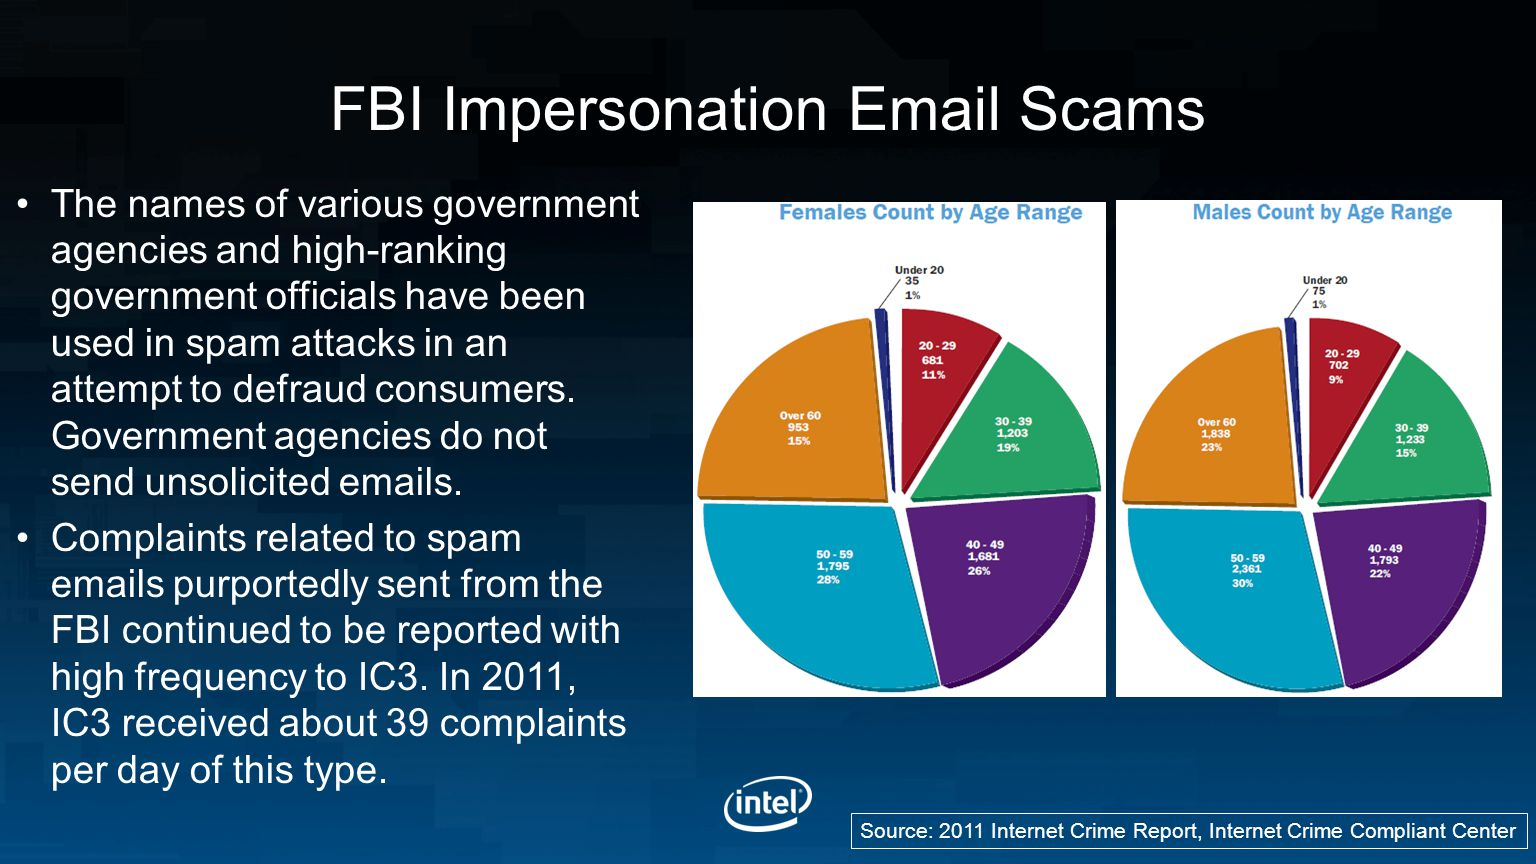 FBI Impersonation Email Scams